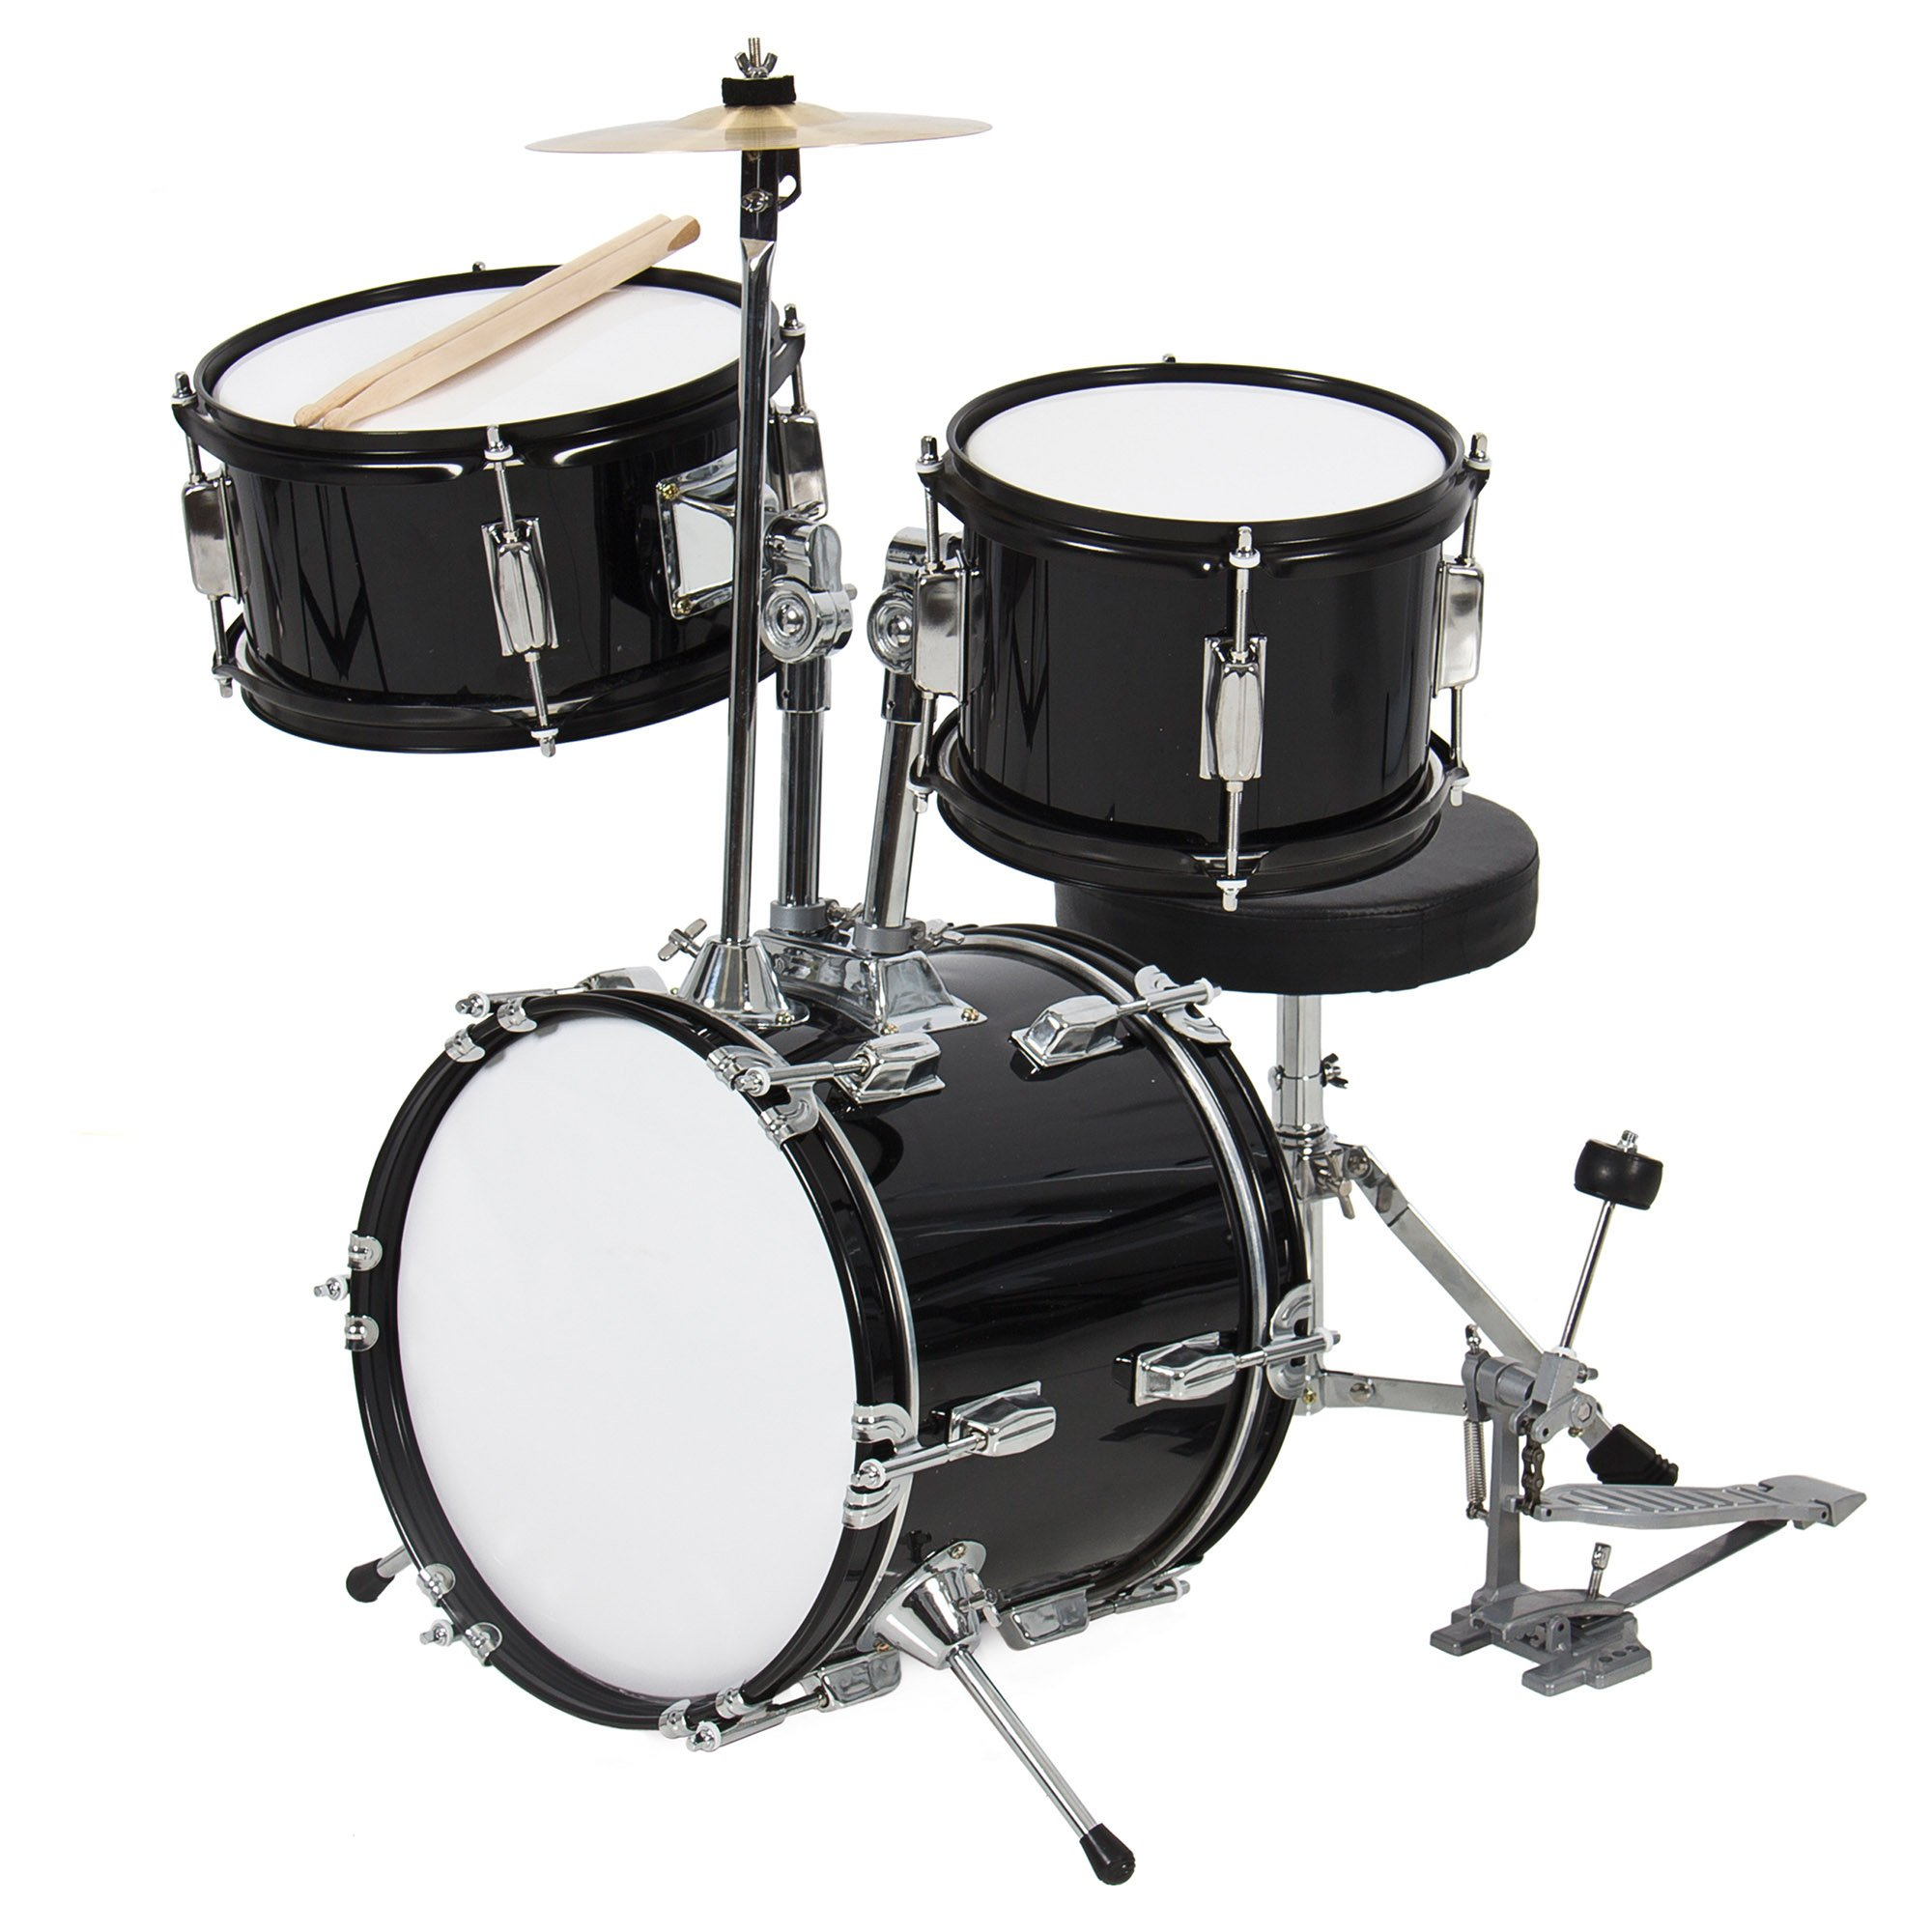 Best Choice Products 3-Piece Kids Beginner Drum Set with Cushioned Stool, Drum Pedal, Black by Best Choice Products